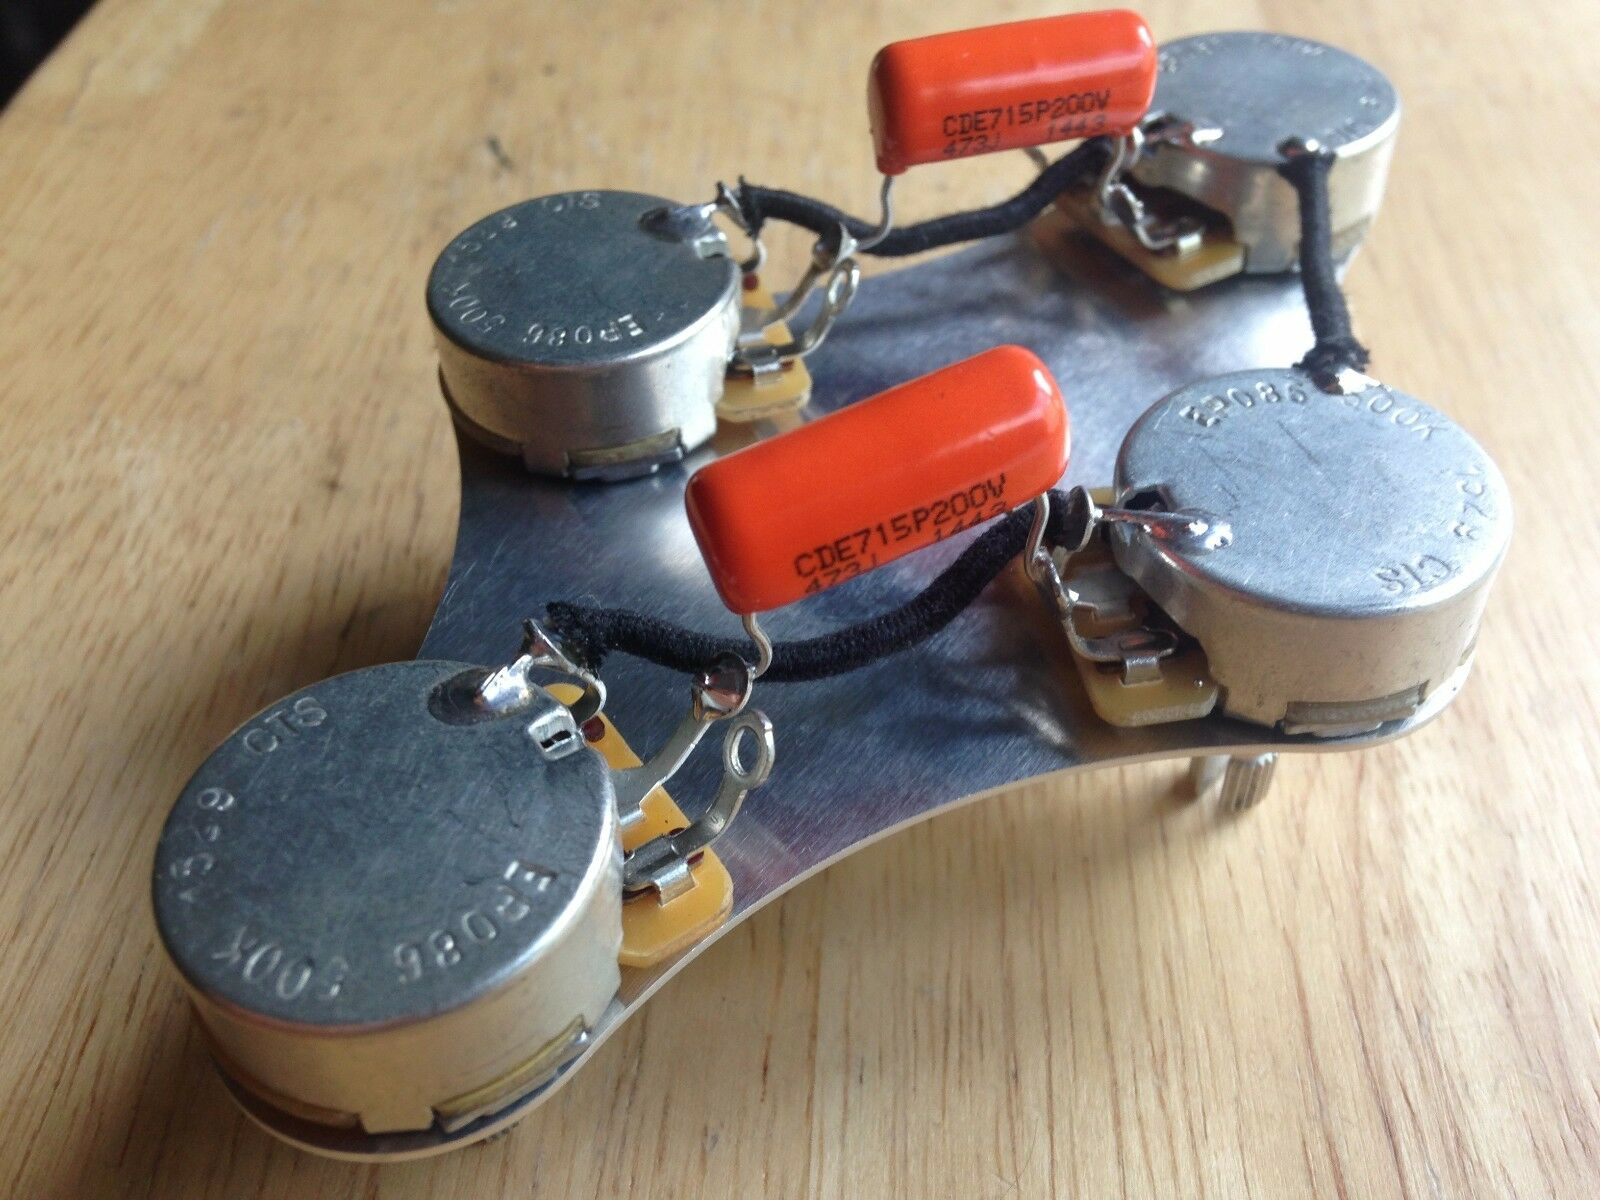 50s Wiring Harness Gibson Epiphone Les Paul 500k Cts Pots 047 Plate Orange Drop Cap 1 Of 4